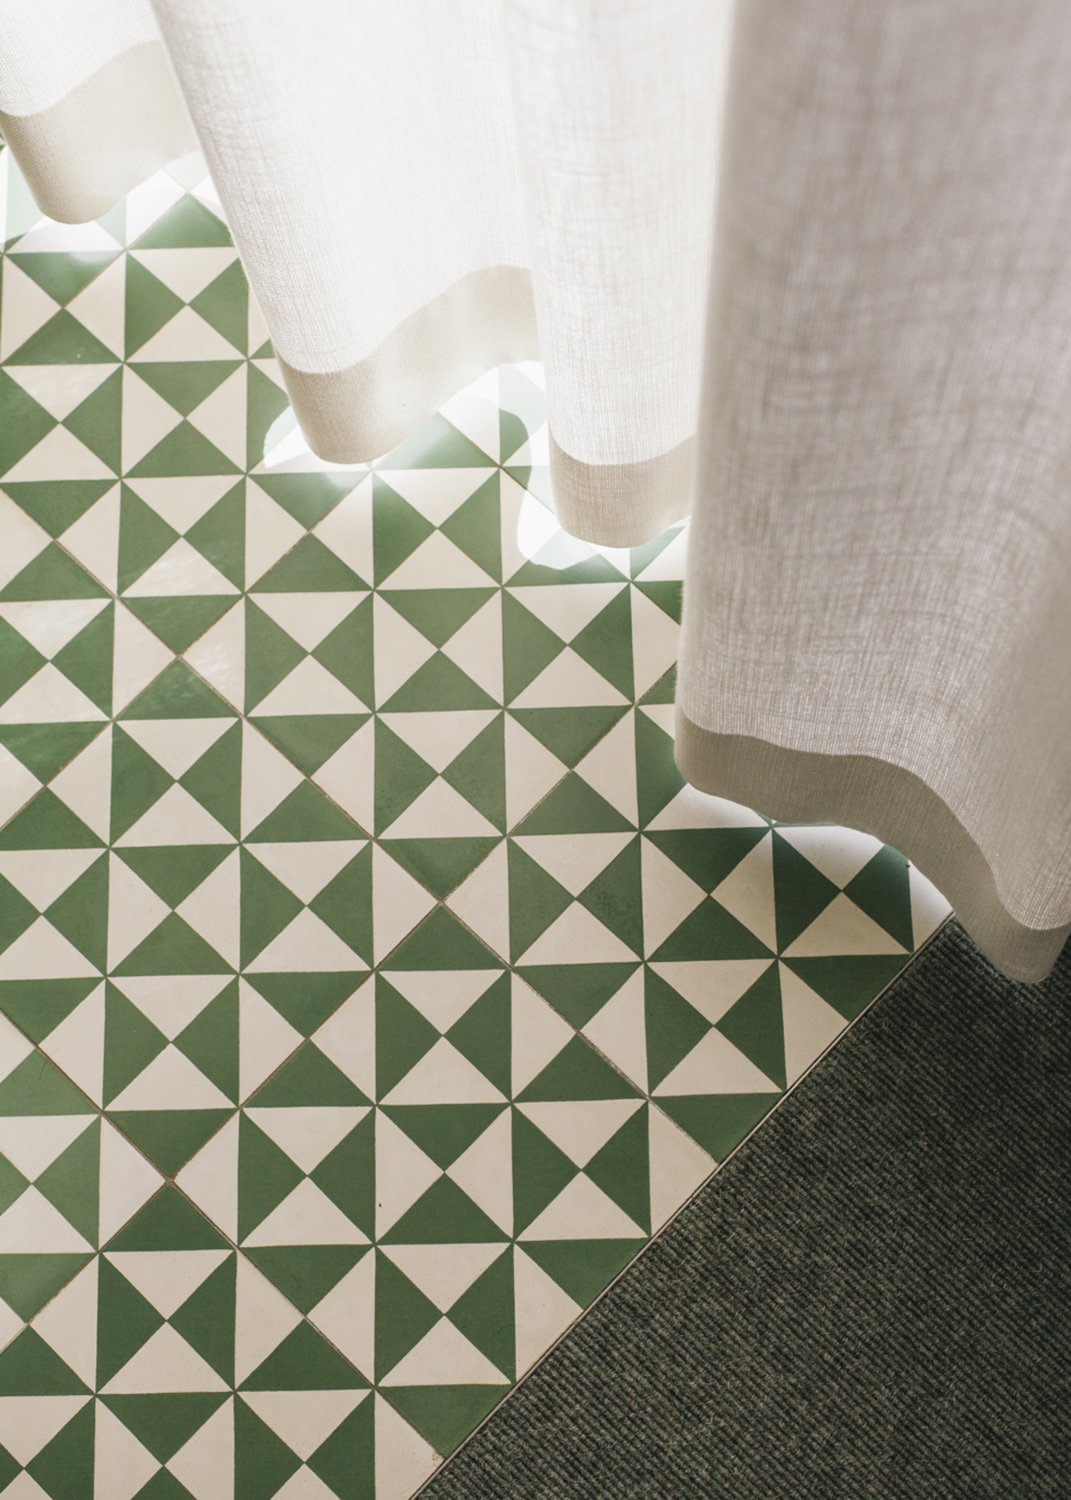 Living Room, Carpet Floor, and Cement Tile Floor cement tiles  Haus Mai by Project Architecture Company